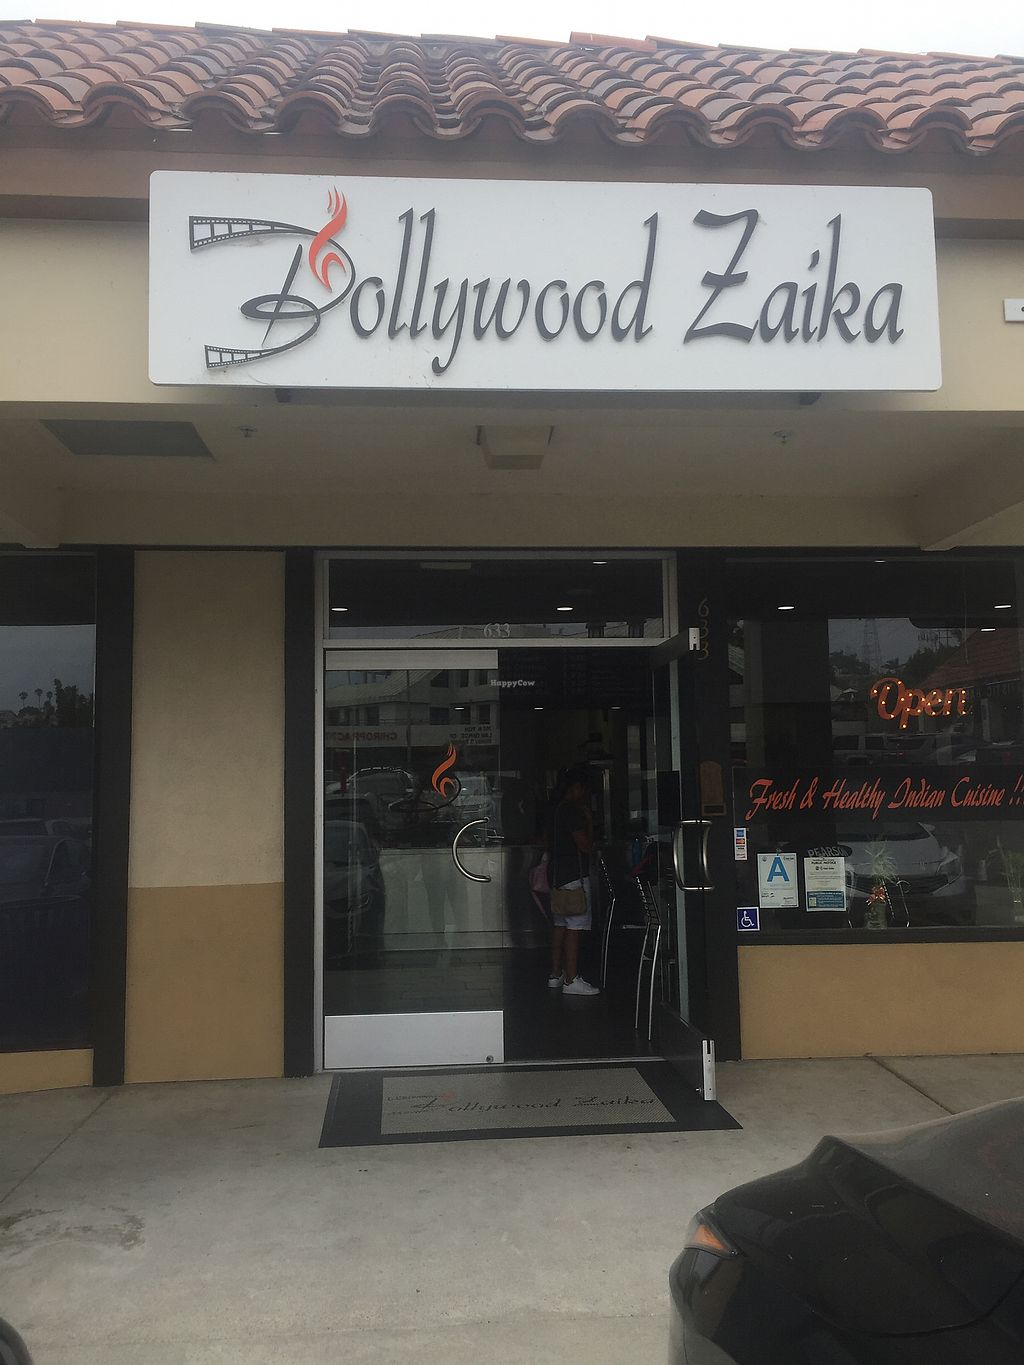 """Photo of Bollywood Zaika  by <a href=""""/members/profile/R-MV"""">R-MV</a> <br/>The front of the restaurant  <br/> August 26, 2017  - <a href='/contact/abuse/image/88230/297548'>Report</a>"""